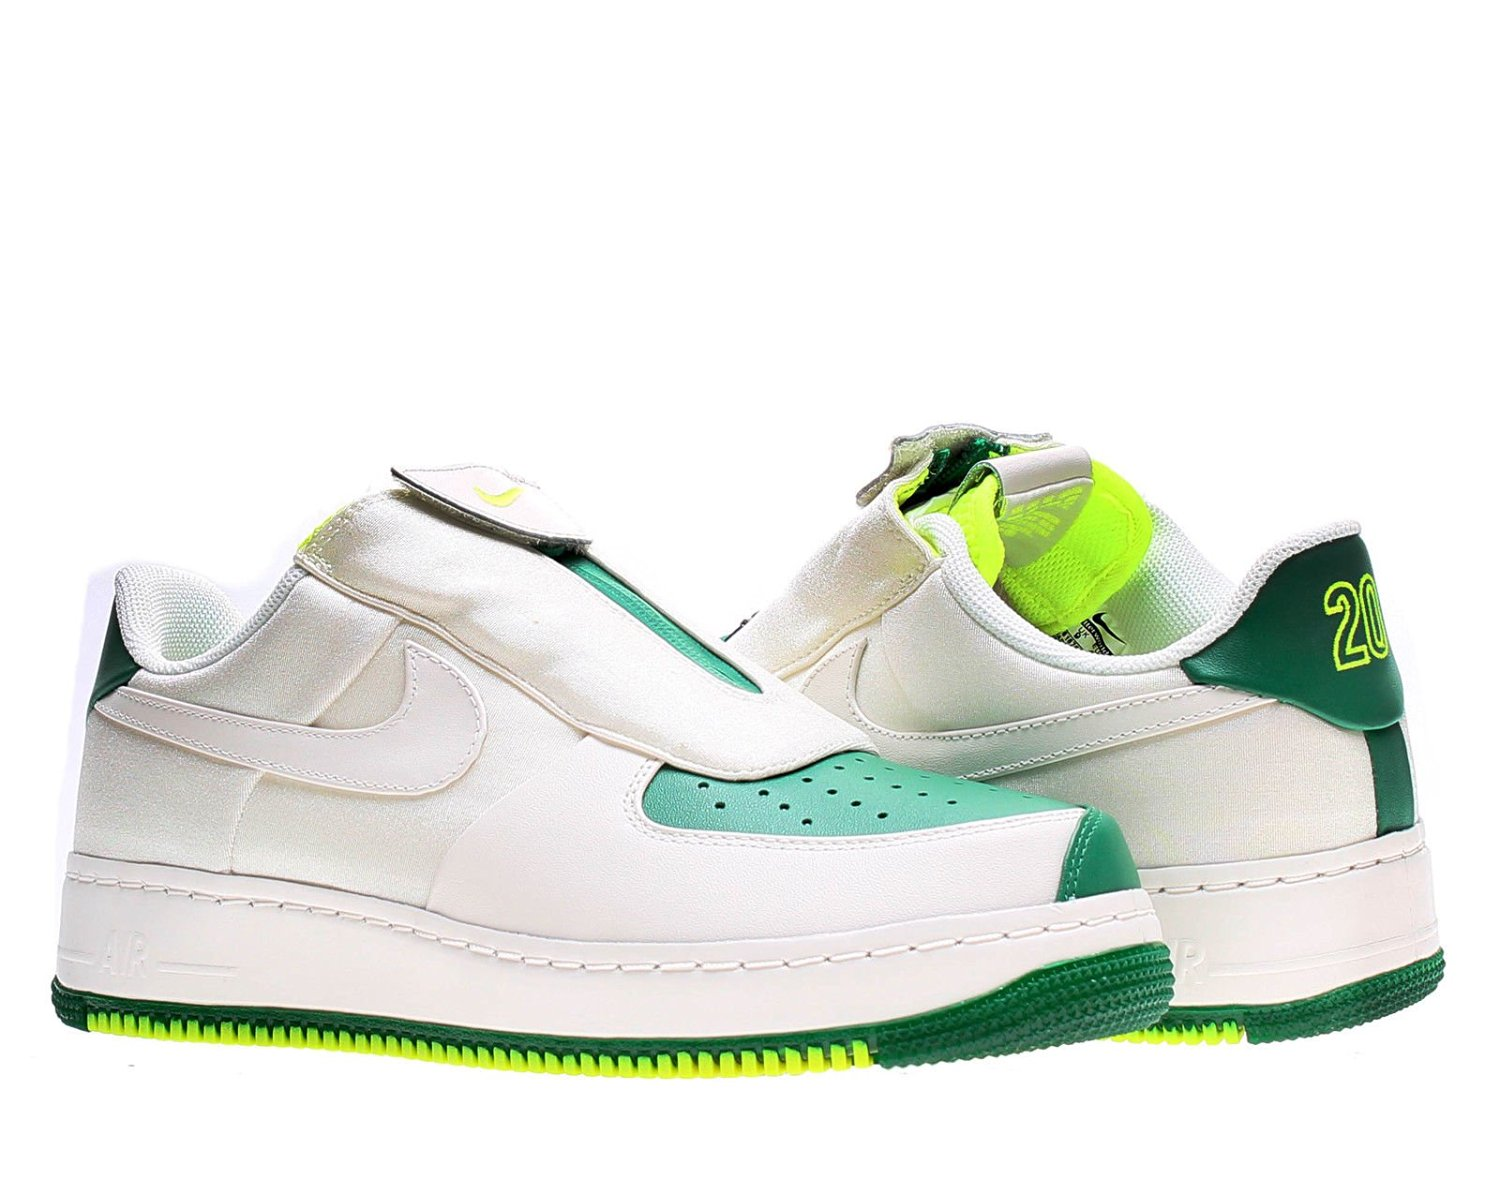 cheap for discount bd843 bc3c1 Buy Nike Air Force 1 Low Cmft Lw Gp SIG Green sail Mens Basketball Shoes  616760-300 Sz 14 in Cheap Price on m.alibaba.com